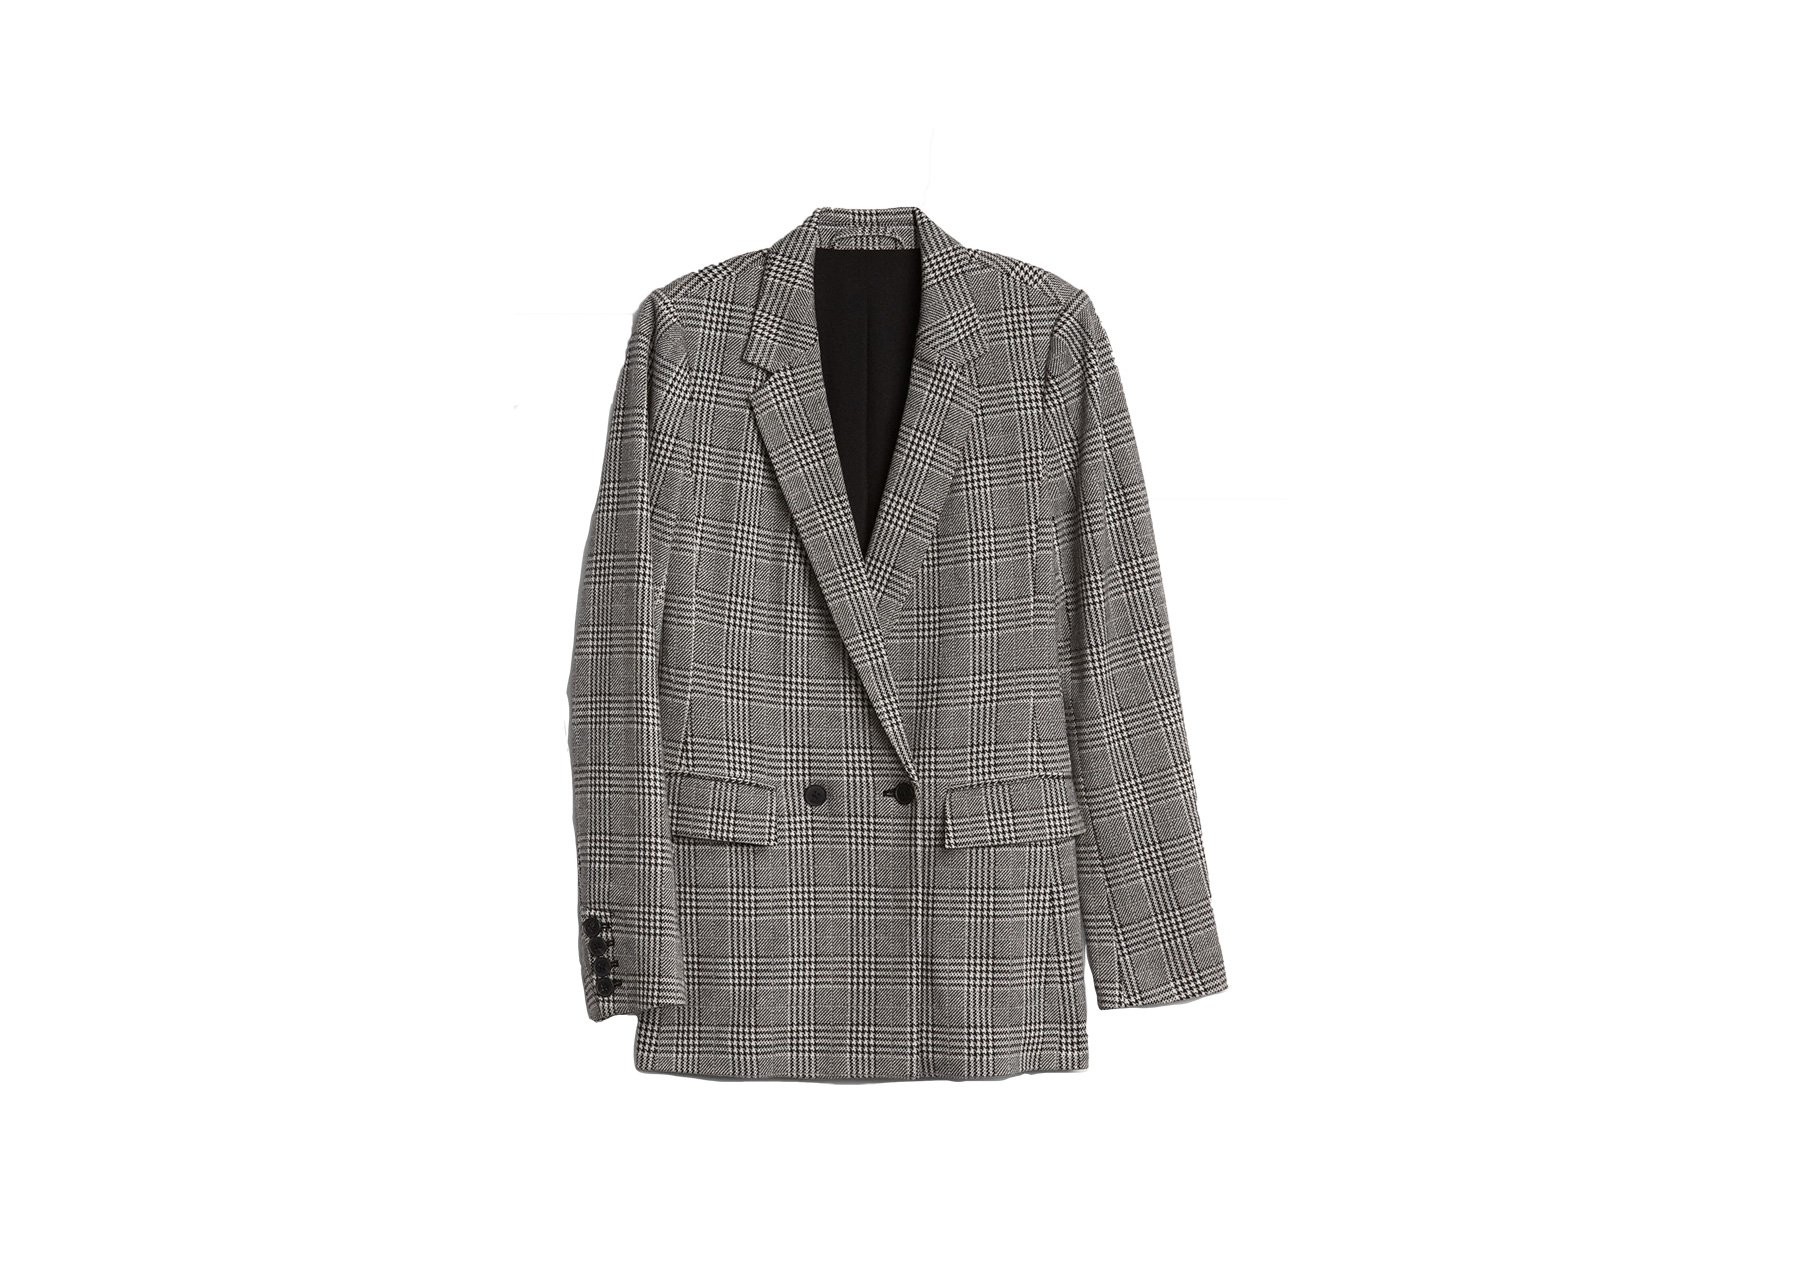 Plaid Blazer Like Kate Middleton's From the Gap